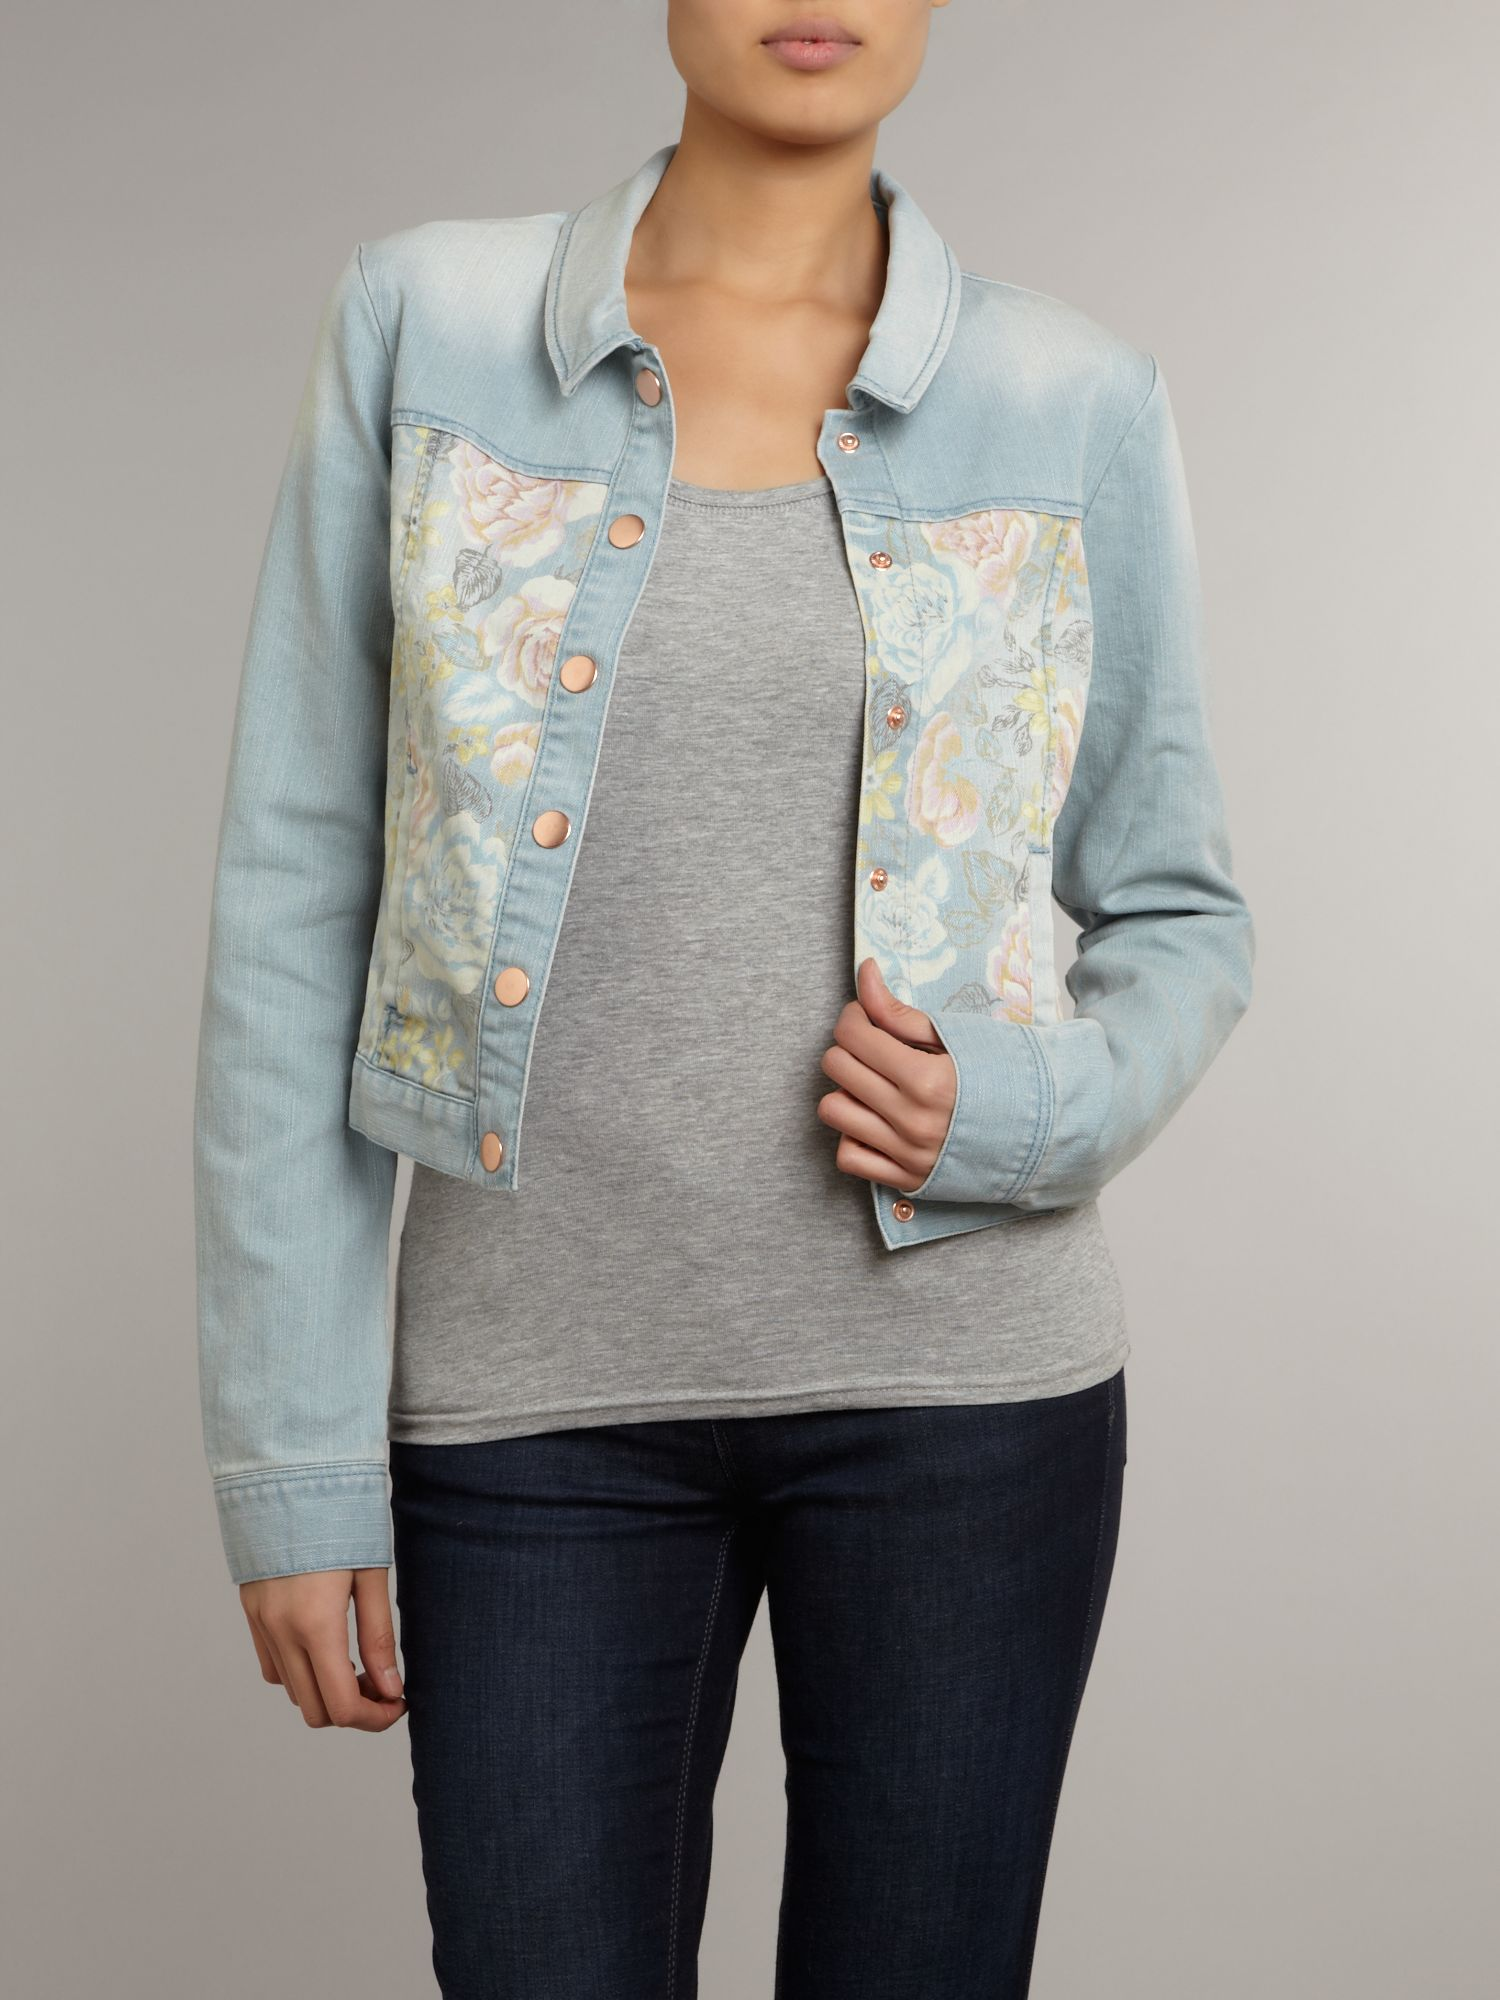 Denim patterned jacket